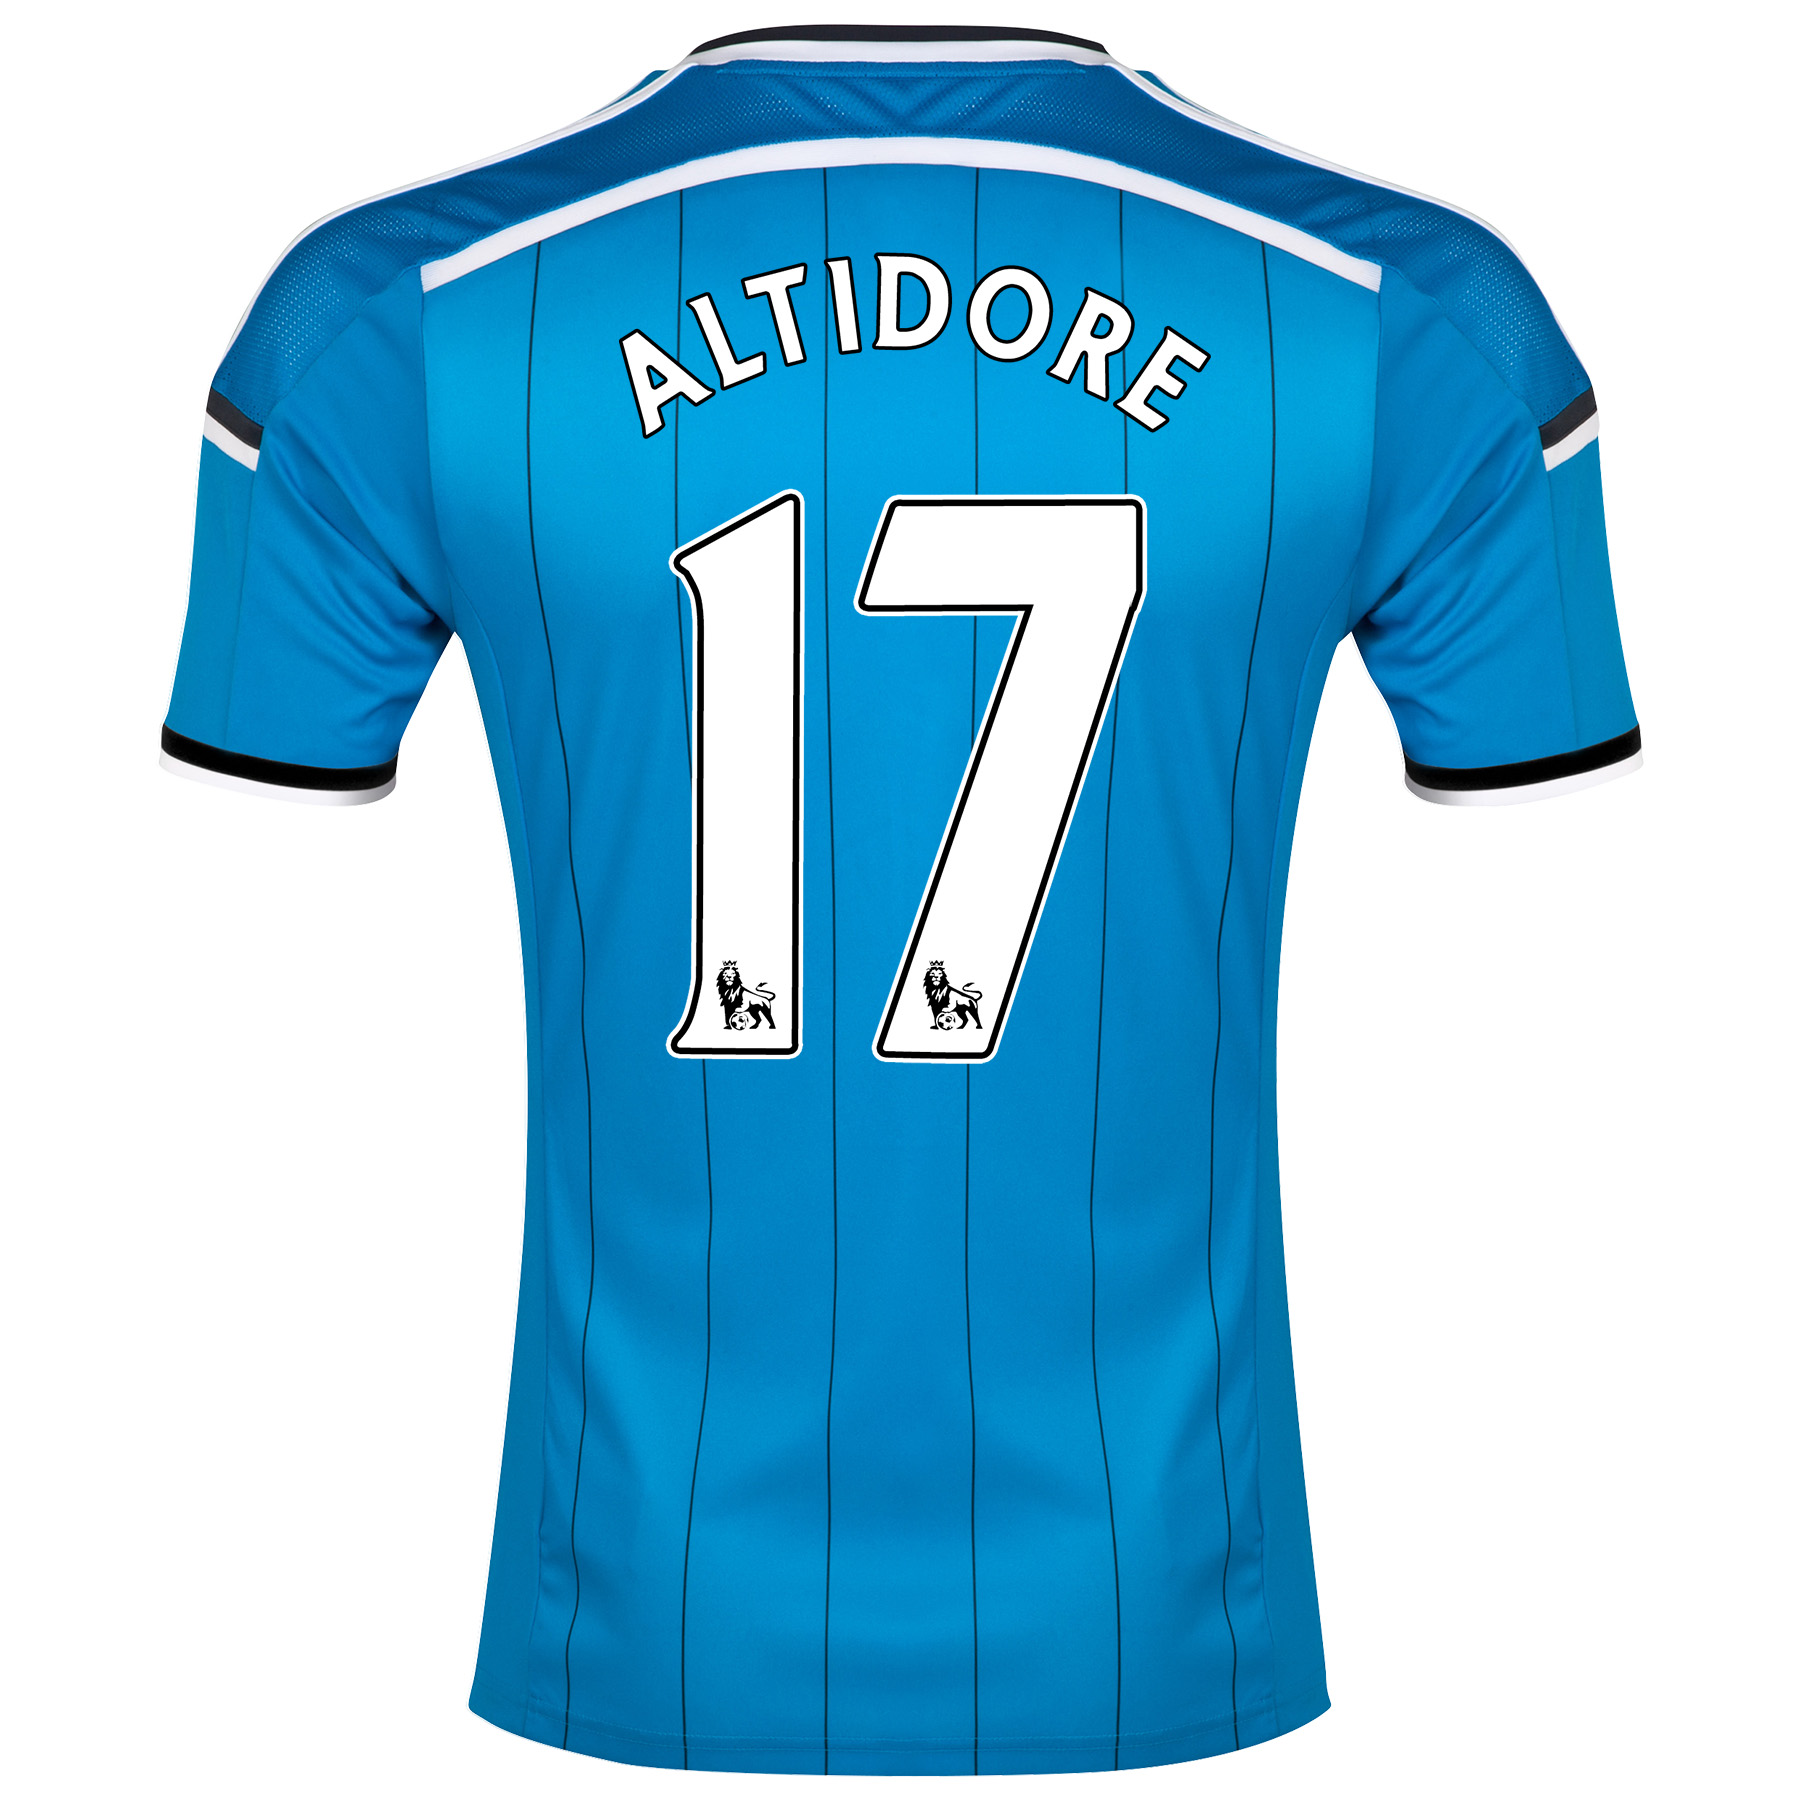 Sunderland Away Shirt 2014/15 Lt Blue with Altidore 17 printing